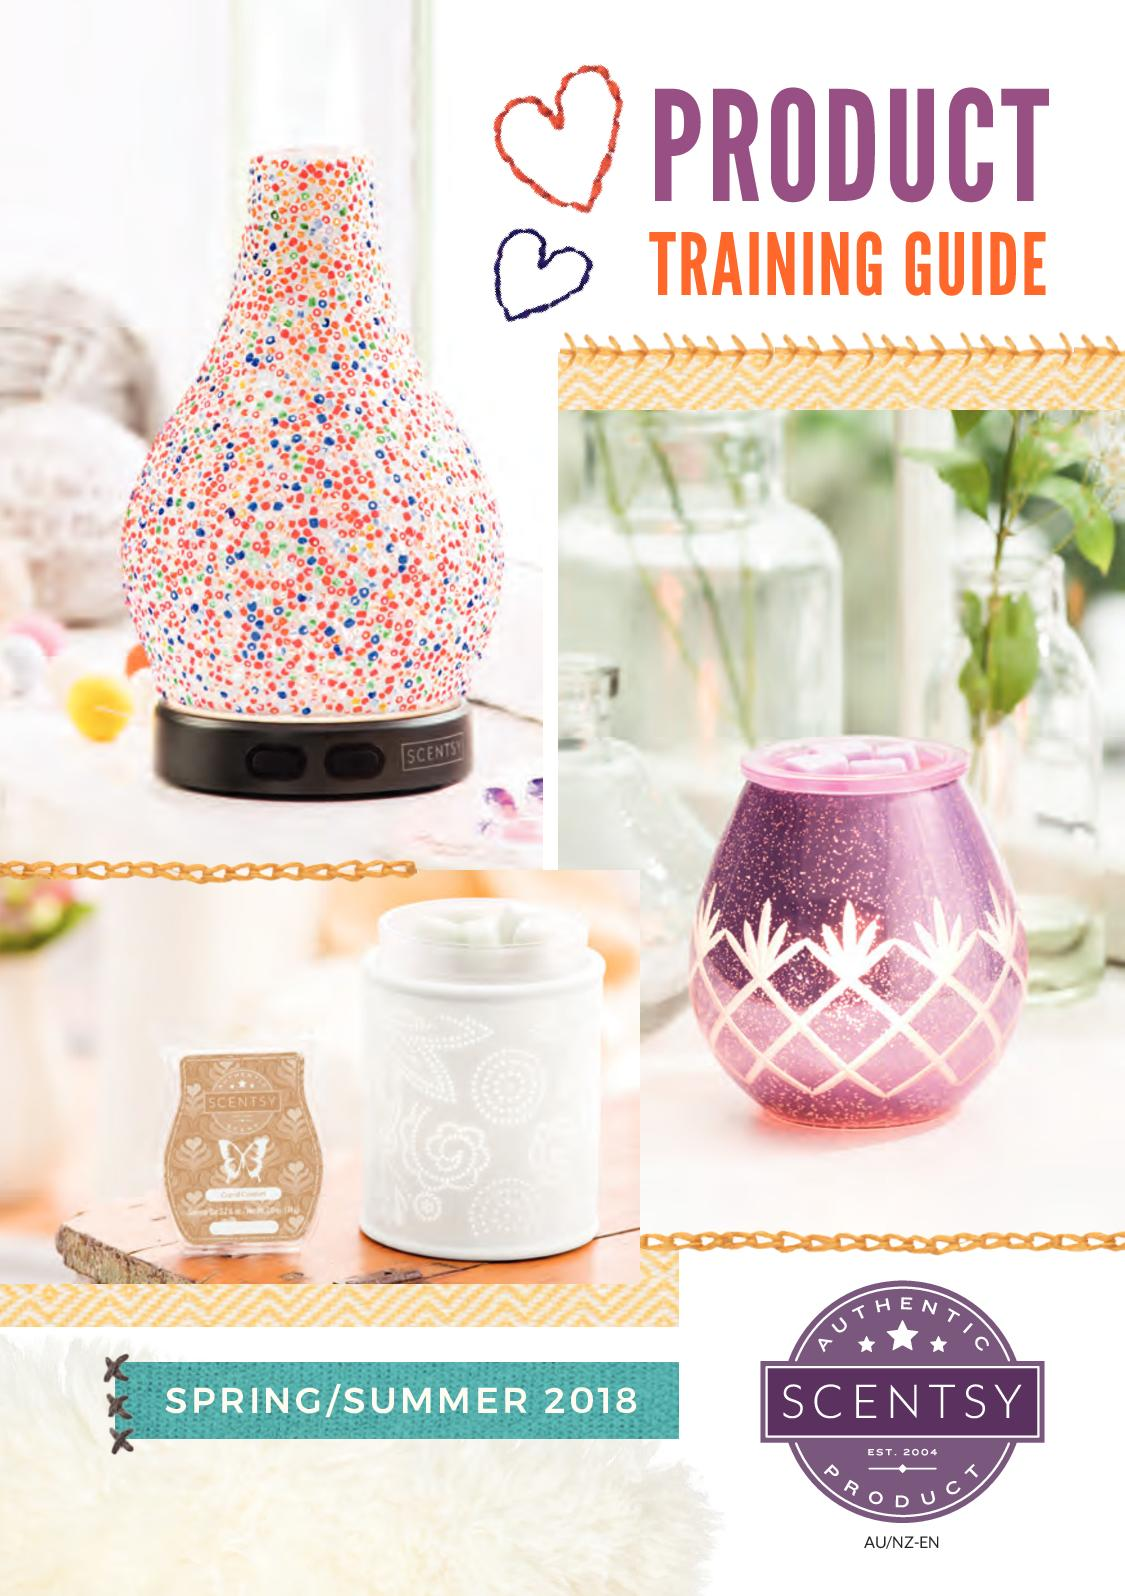 Calaméo Scentsy Product Training Guide Aus Nz 2018